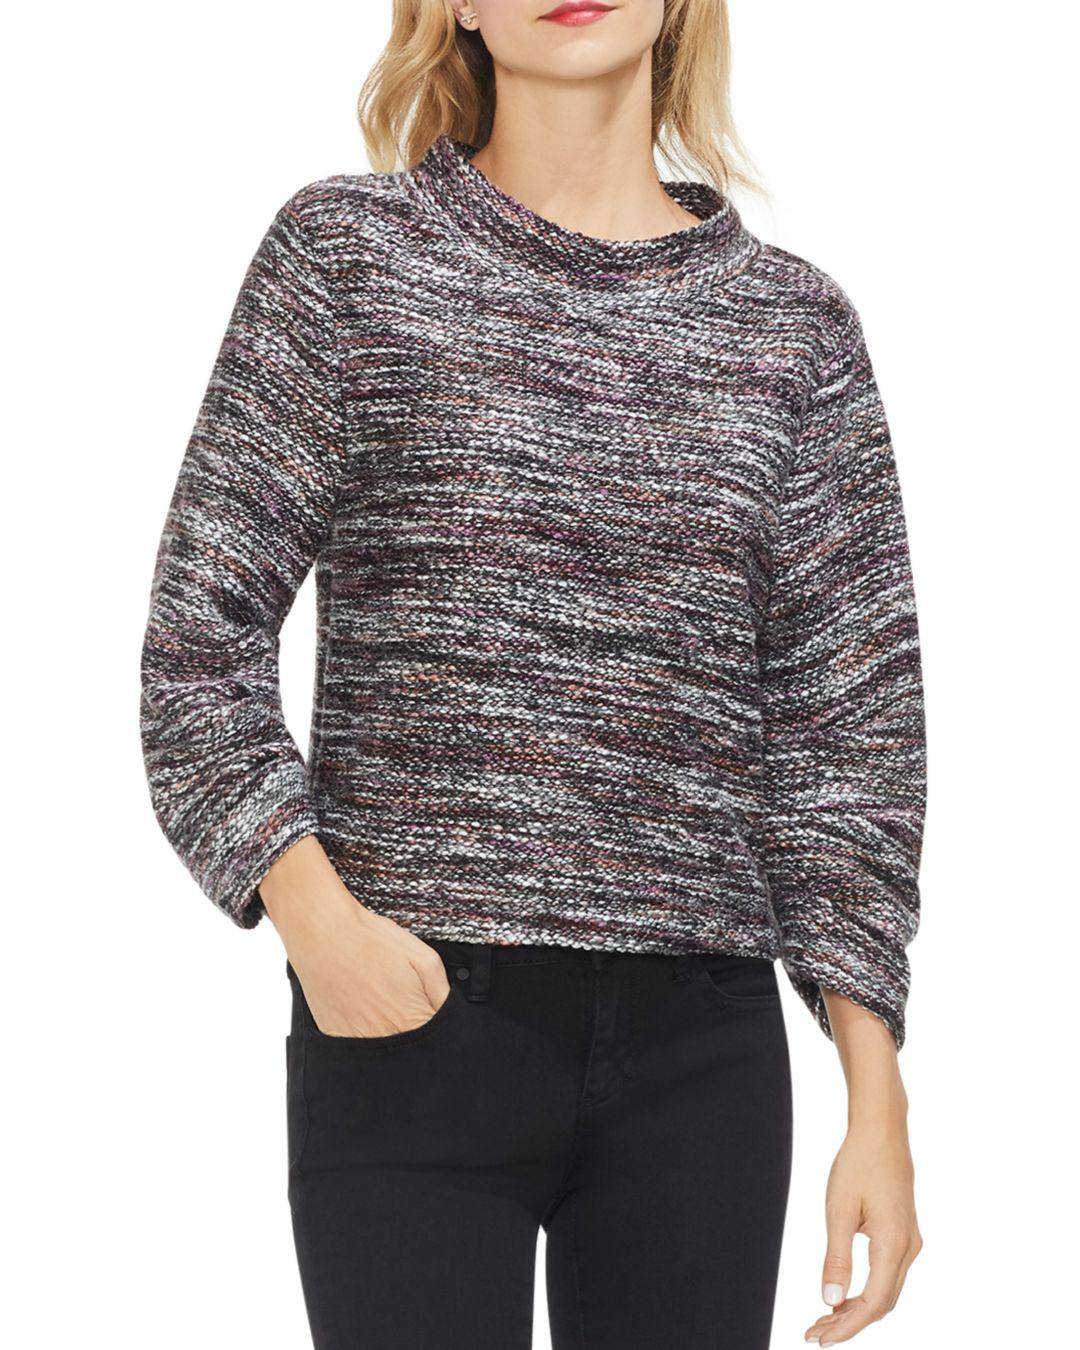 67175fd25d4 Lyst - Vince Camuto Multicolored Boucle Mock Neck Top in Gray